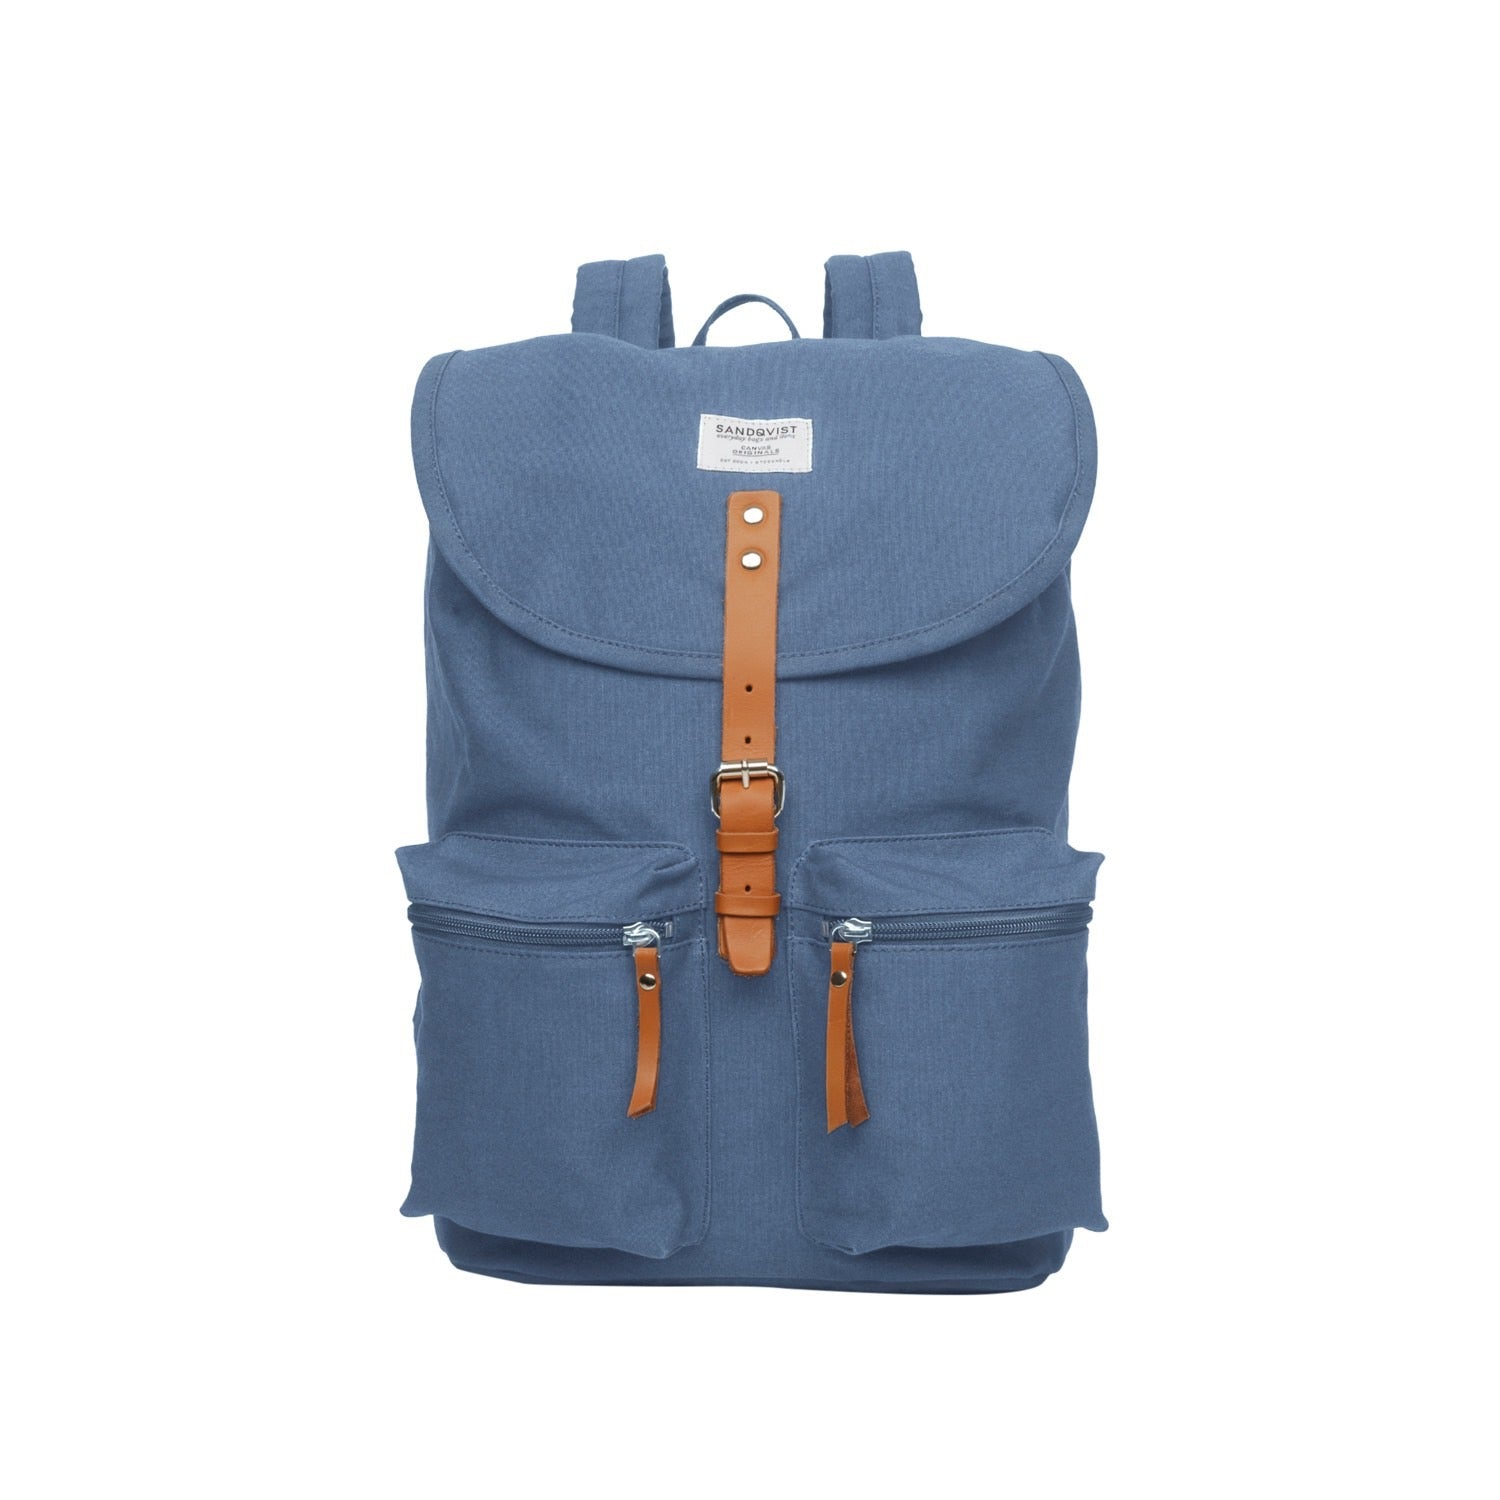 Sandqvist Roald Backpack (Dusty Blue)-1